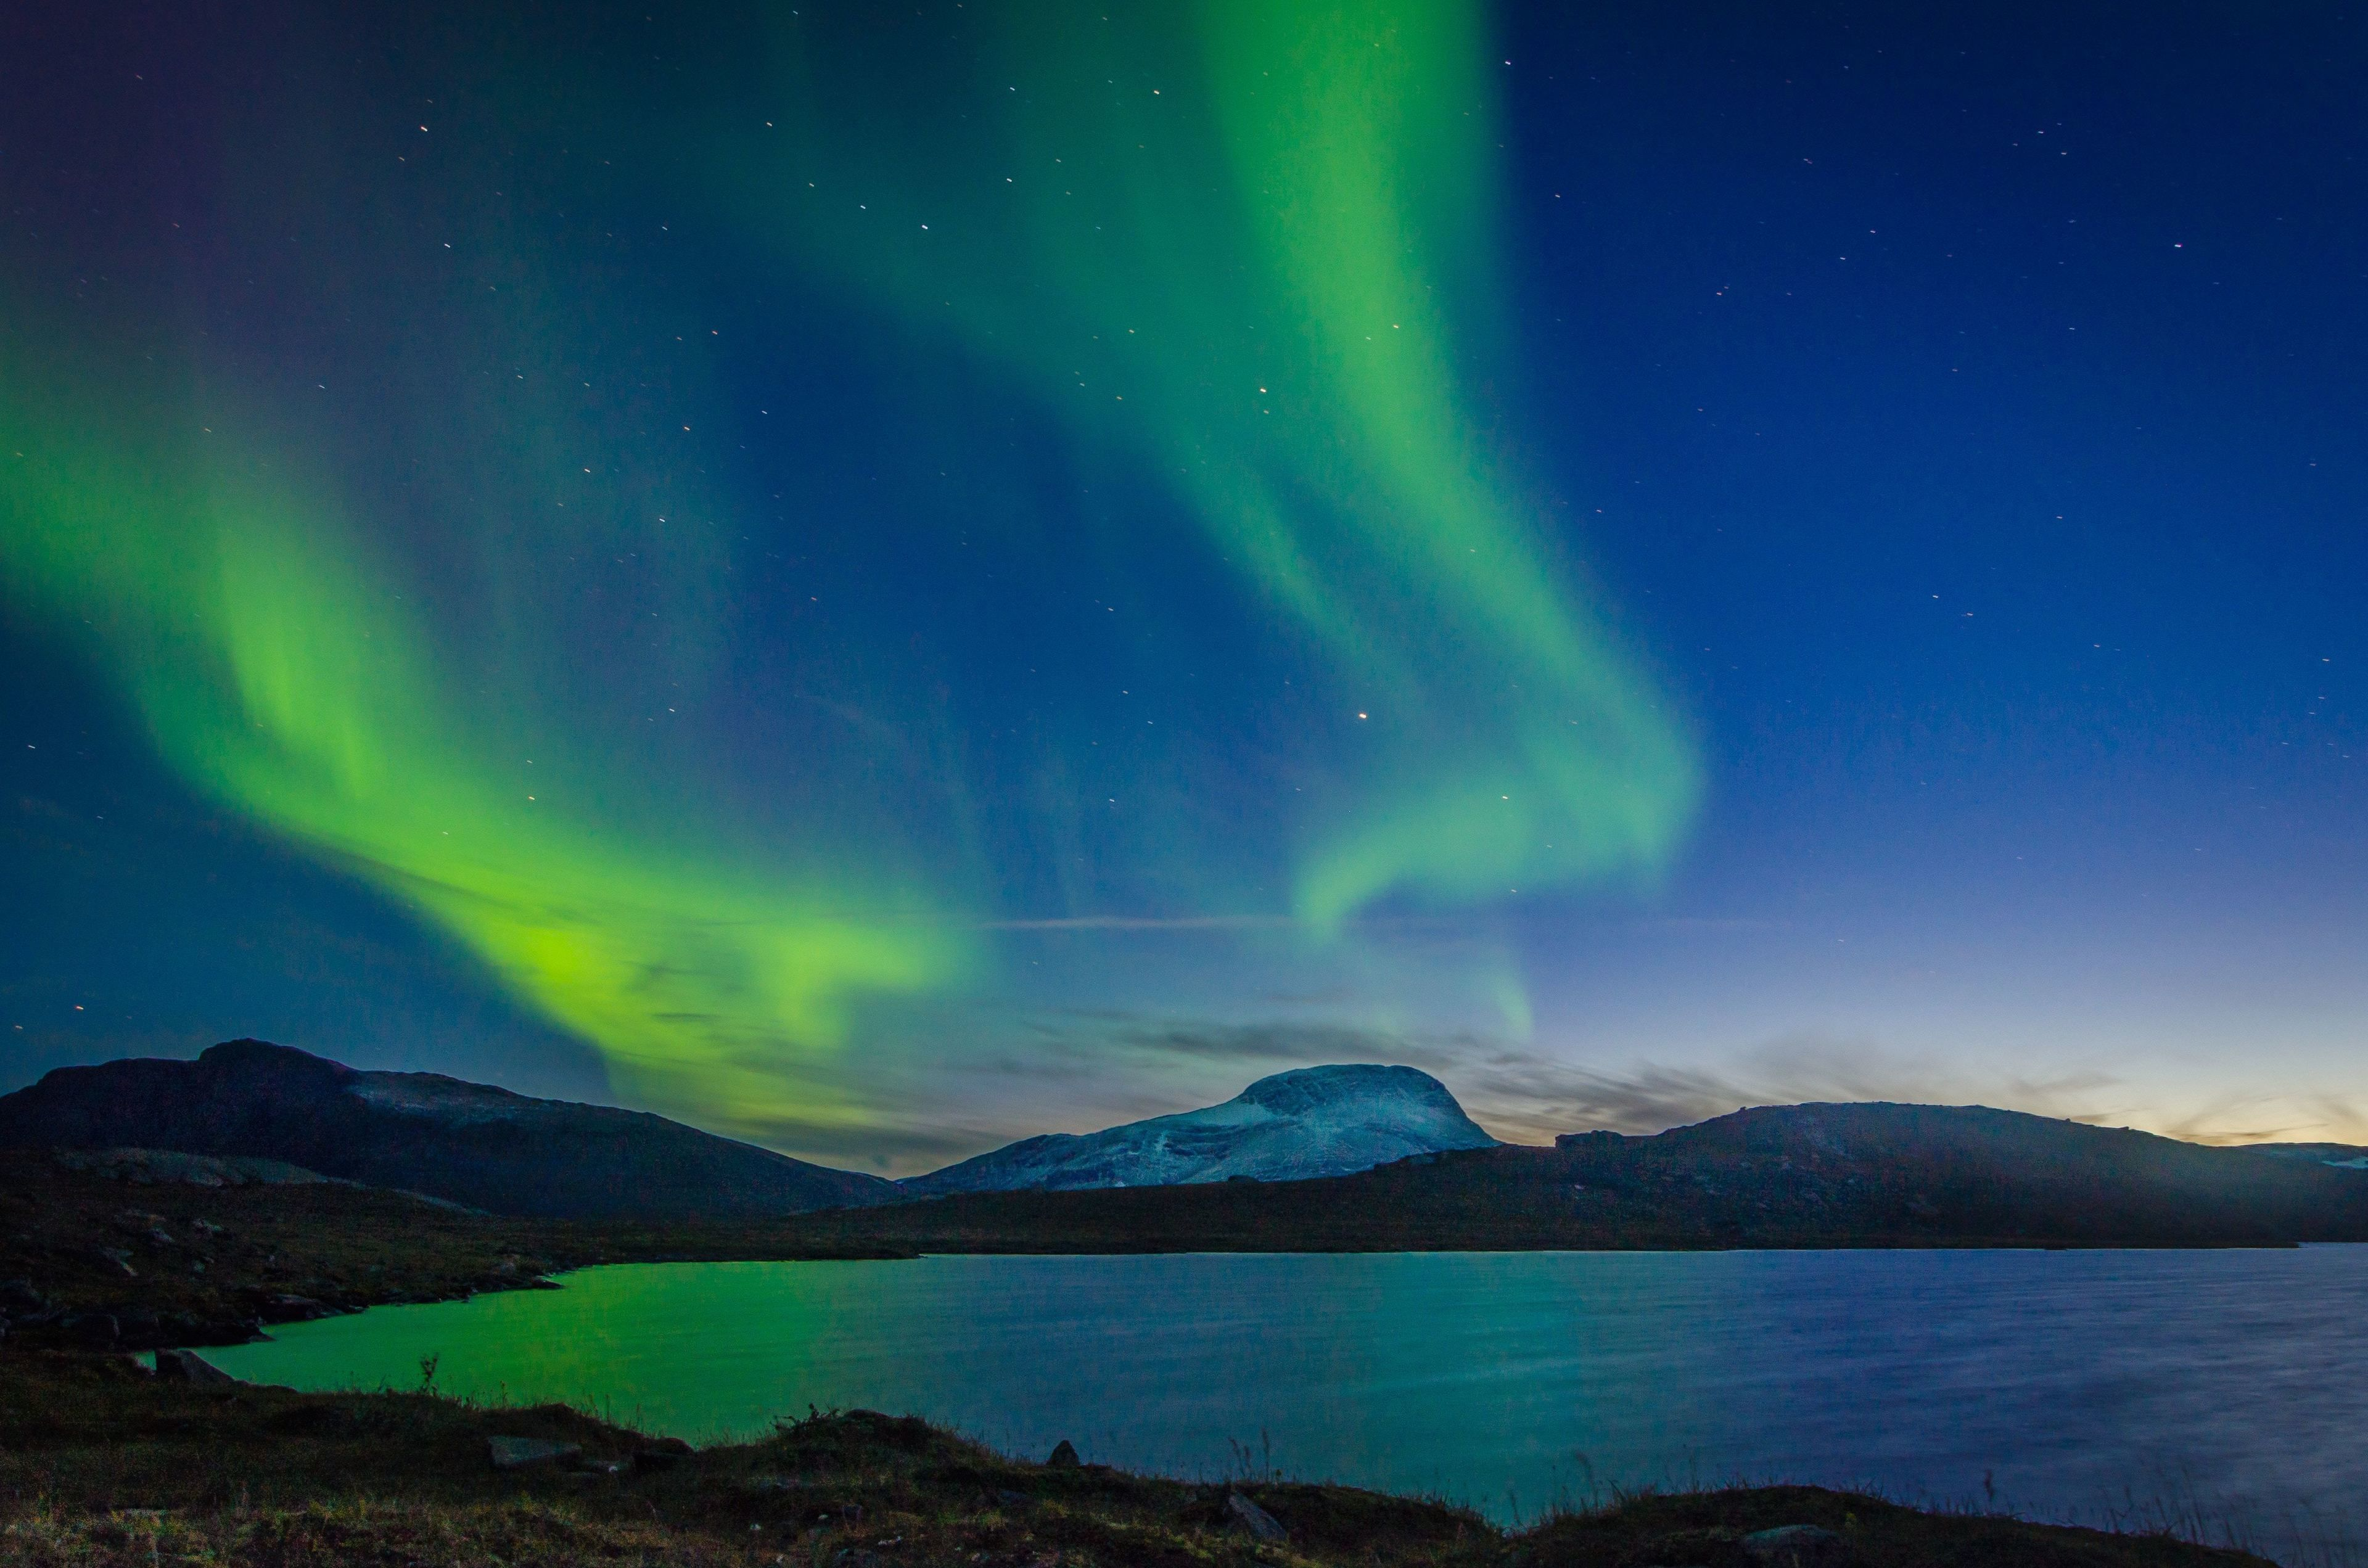 Colorful night views of the Northern Lights in Kiruna